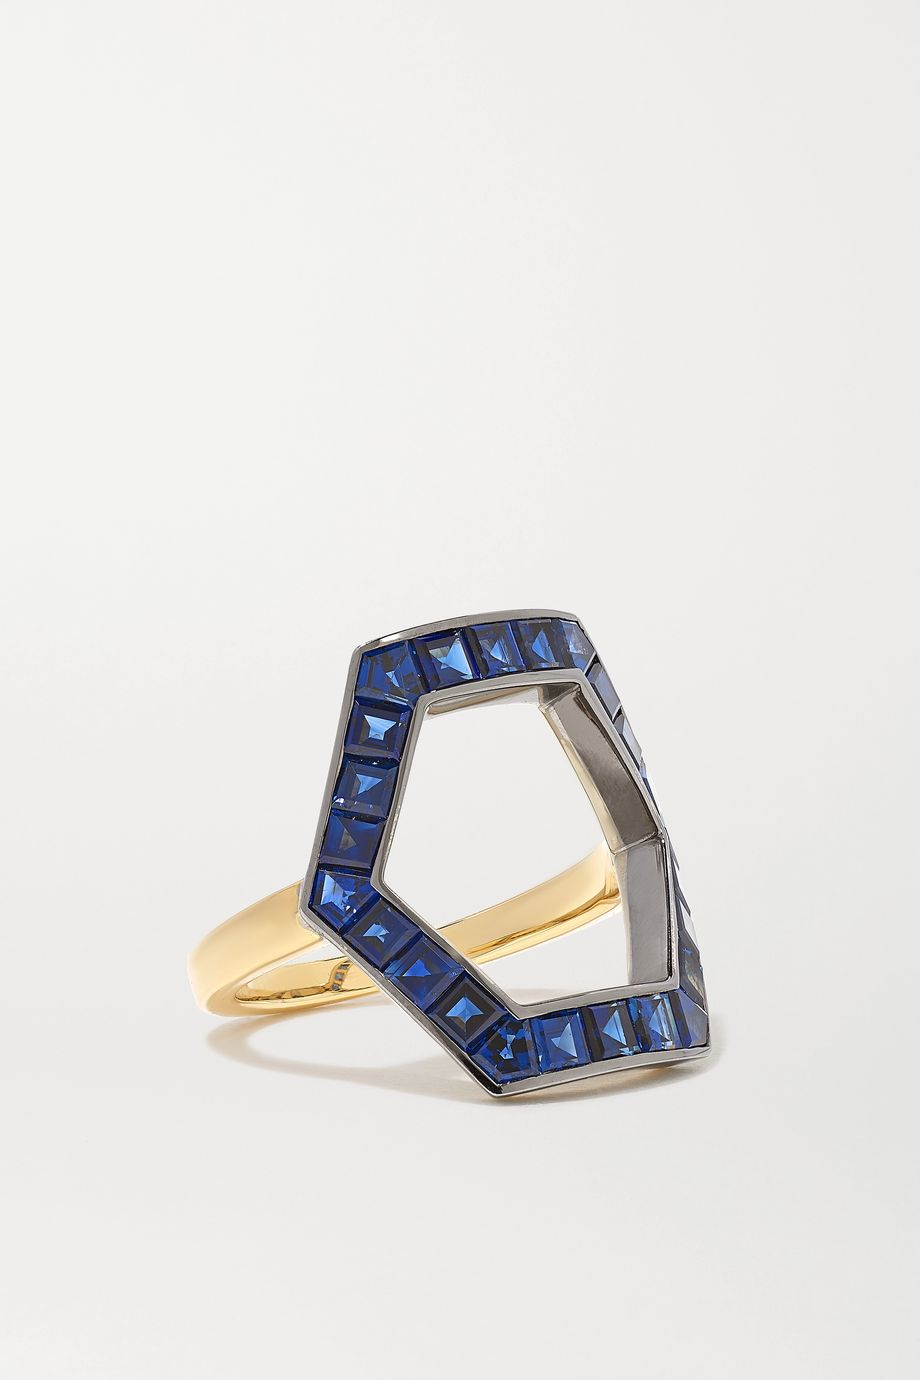 Jessica McCormack Hex 18-karat yellow and blackened white gold sapphire ring